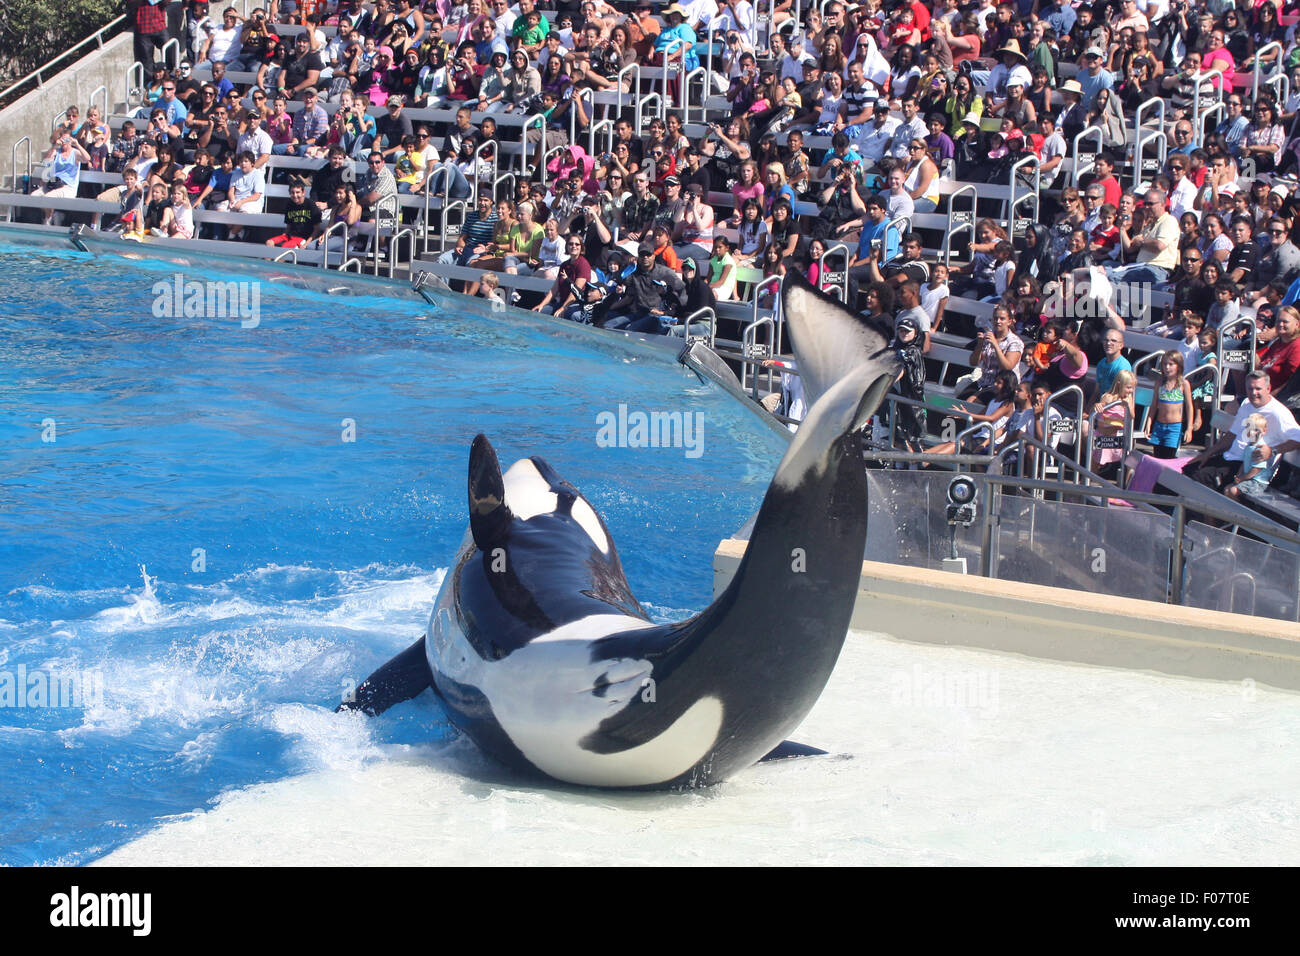 Killer whale performing at the park - Stock Image